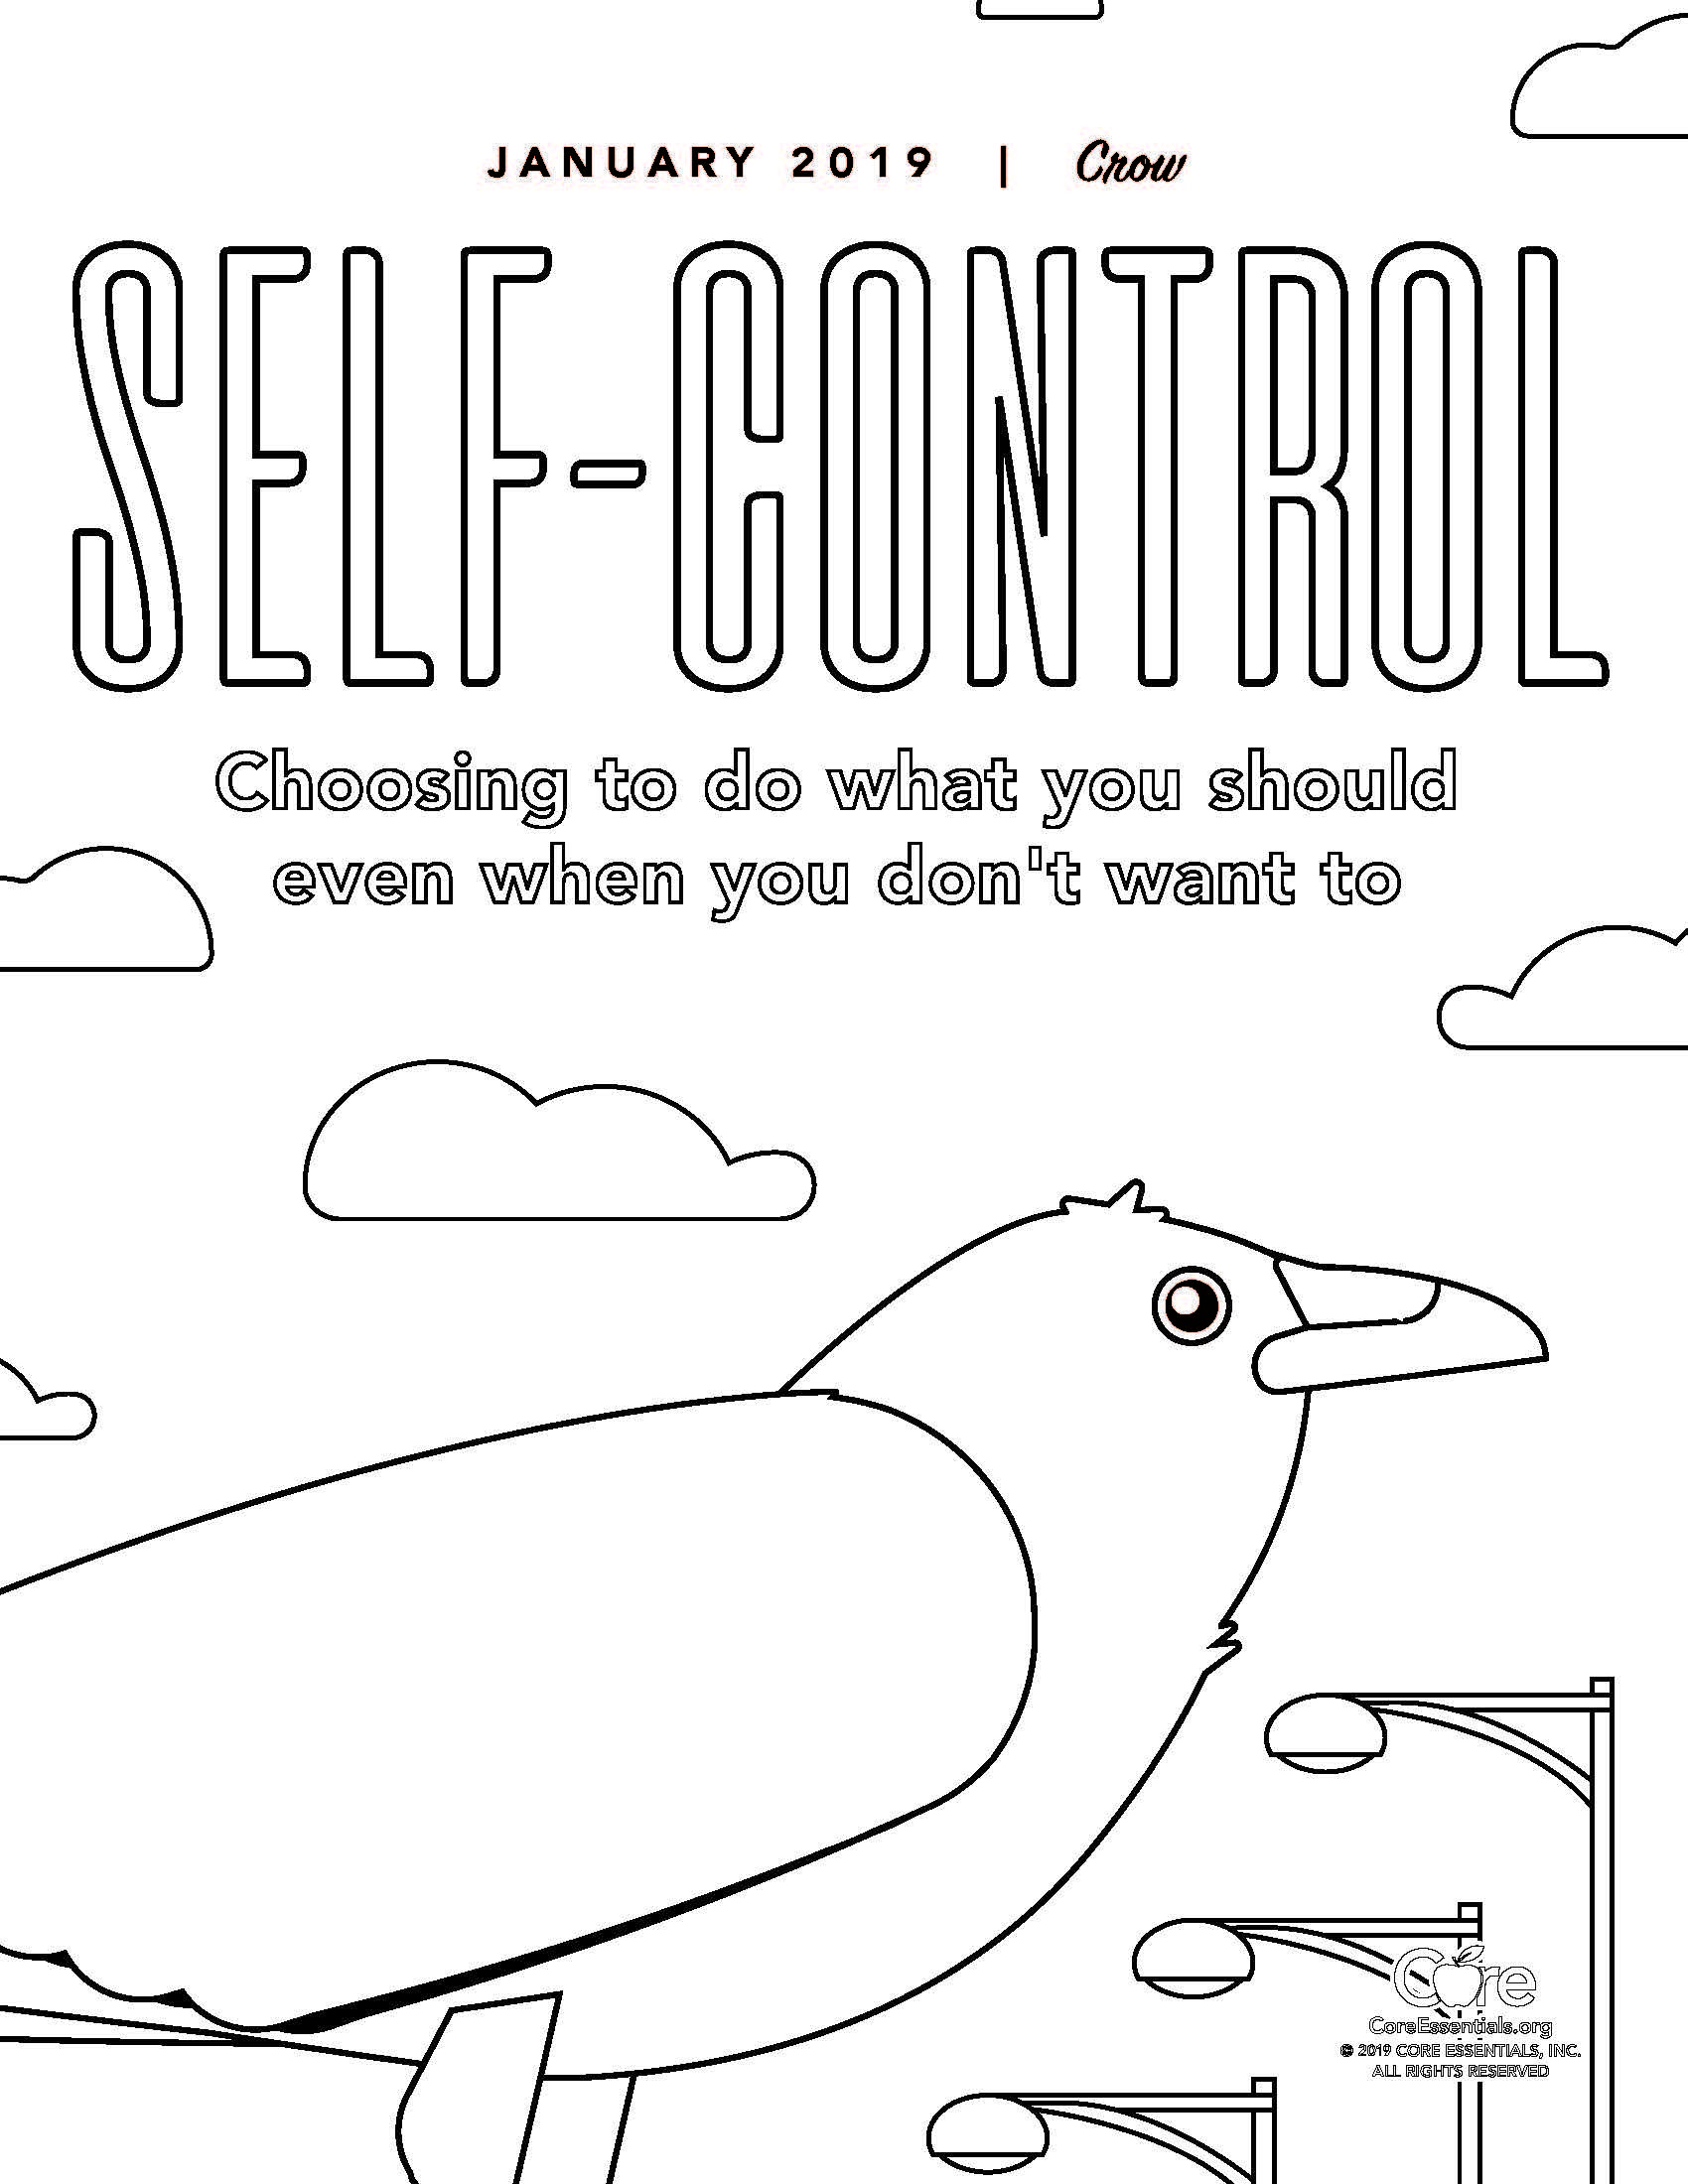 Pin By Core Essential Values On Self Control Jan 2019 Self